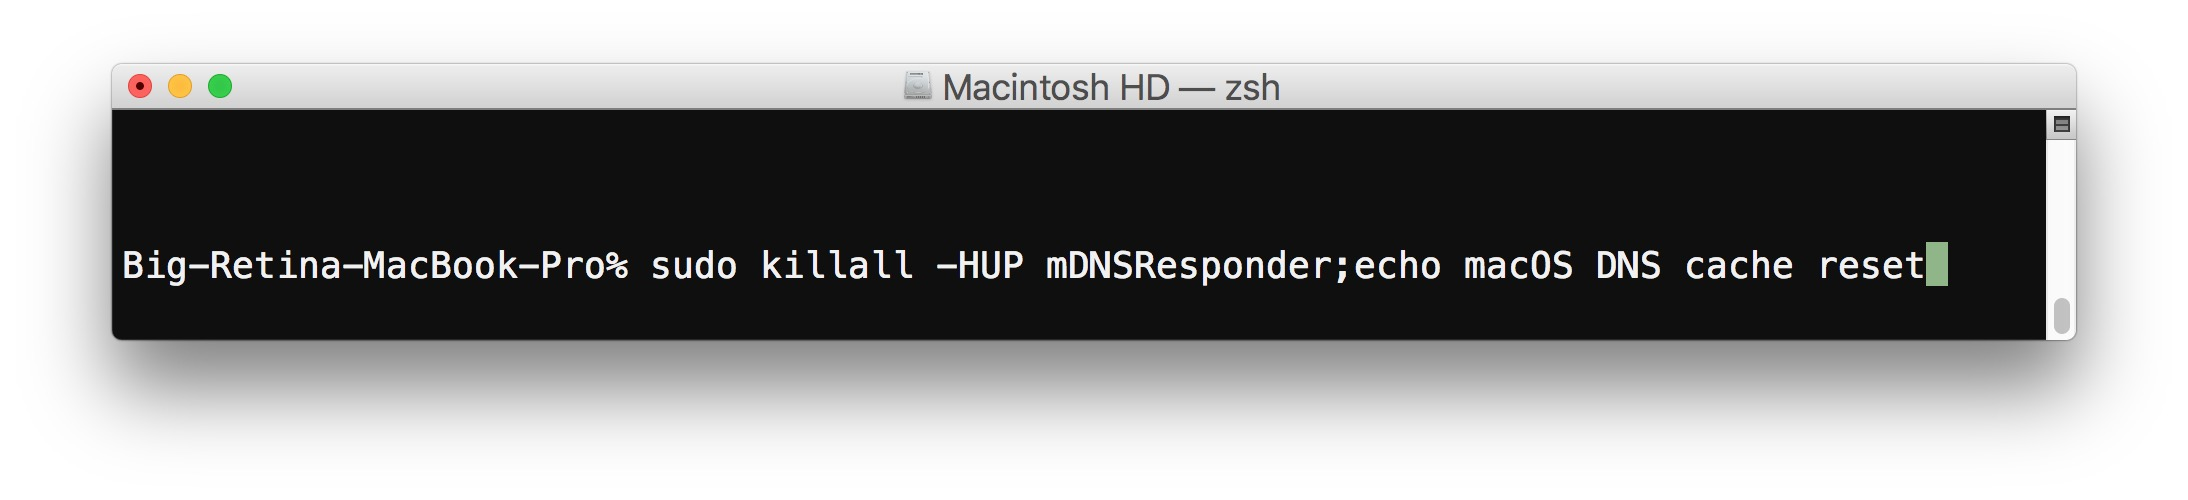 Reset DNS cache in macOS High Sierra